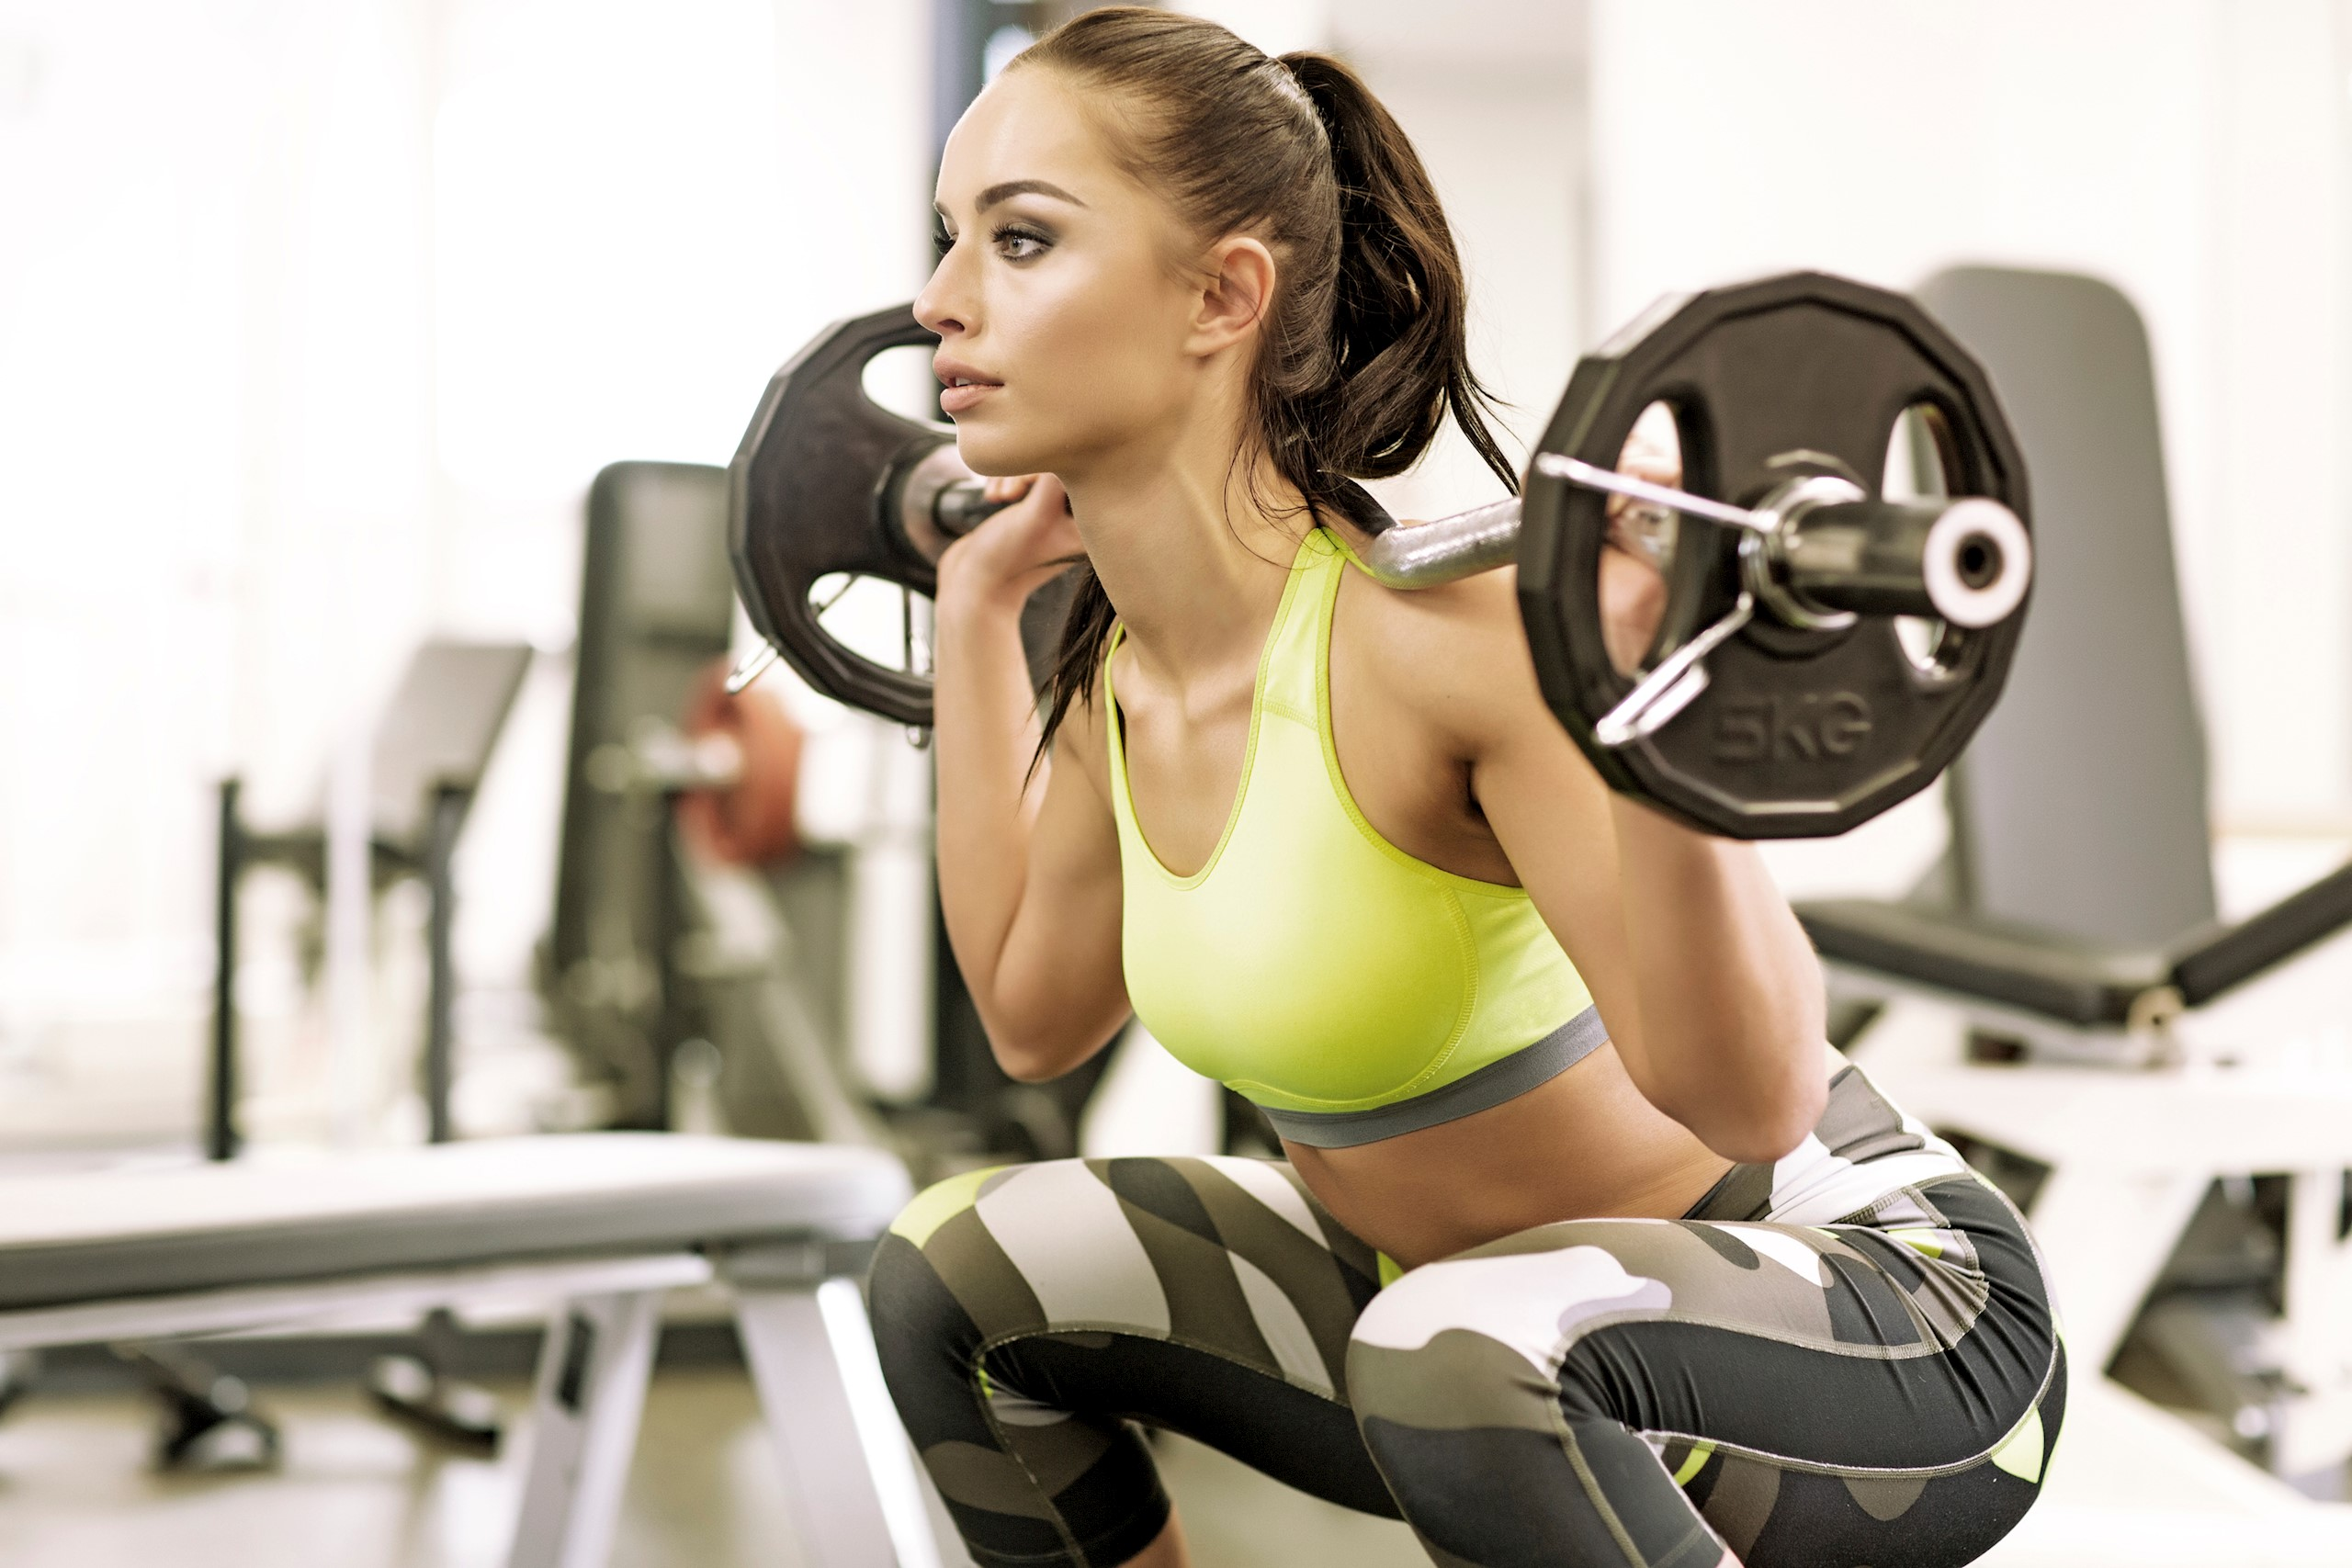 Brunette female working out with weights at a gym